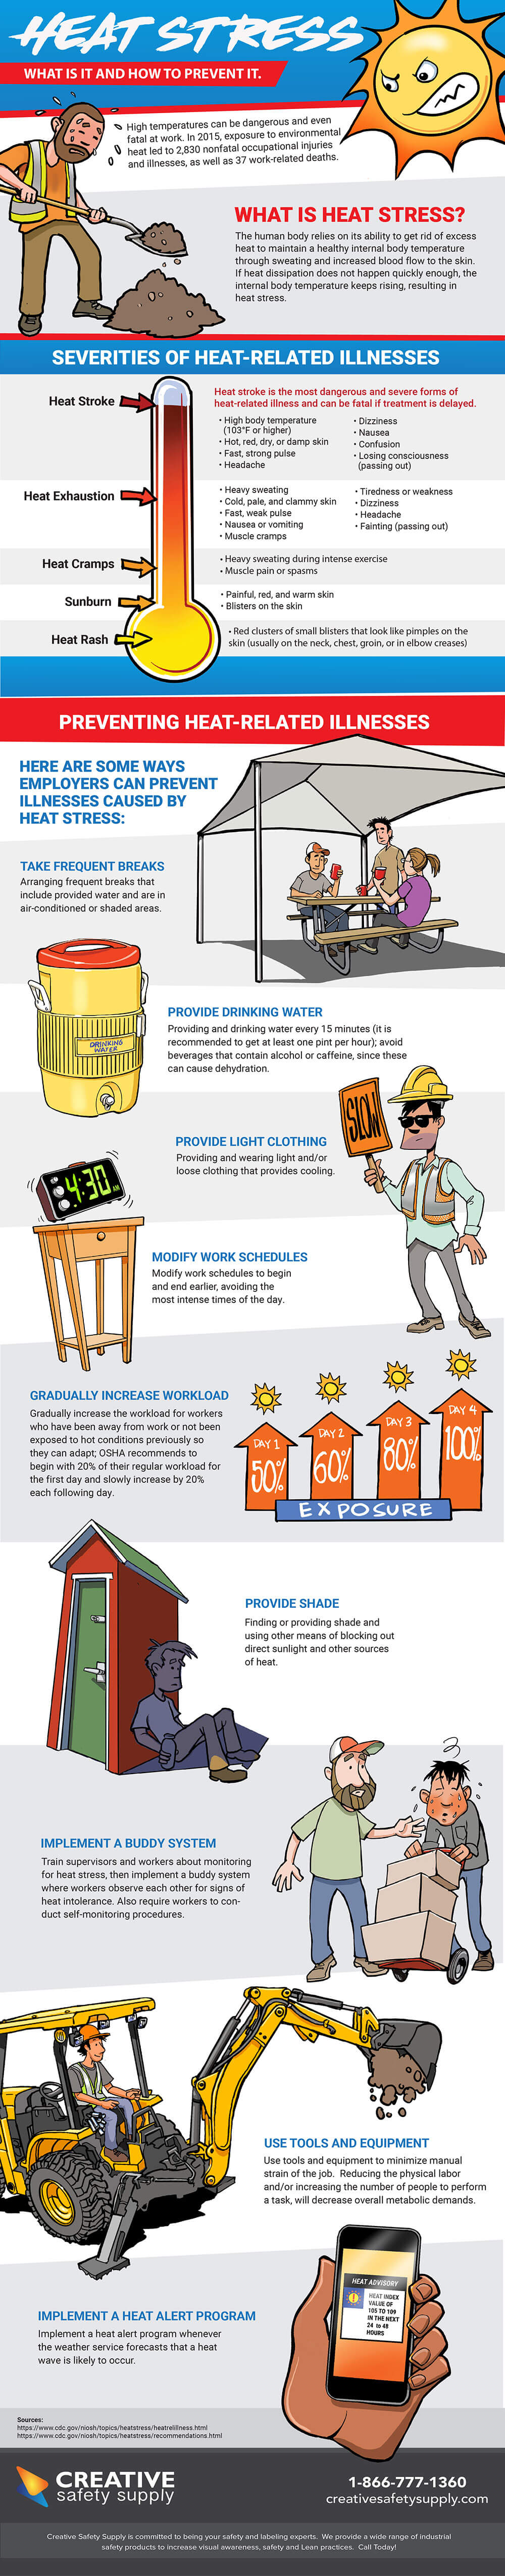 Tips for Preventing Heat Stress in the Workplace